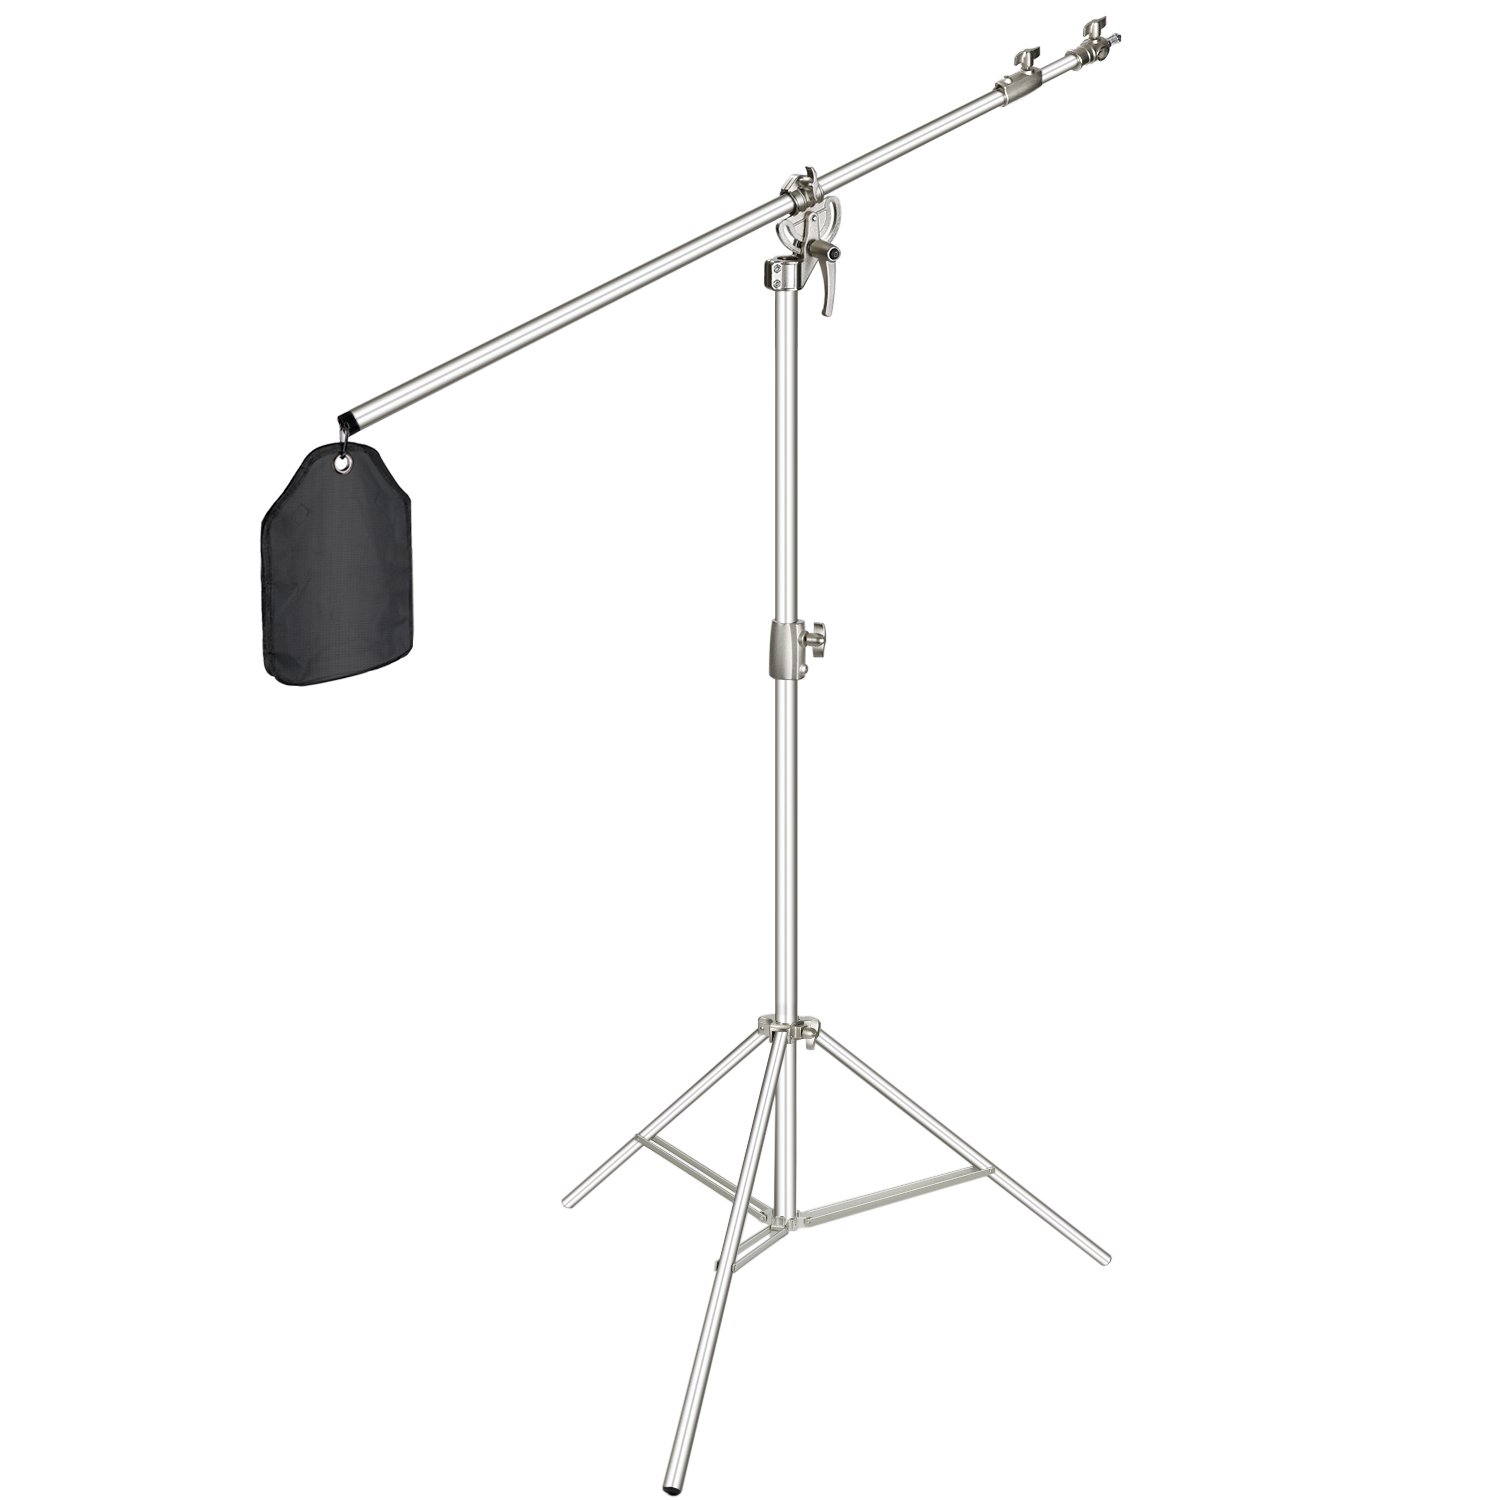 Neewer Photo Studio 2-in-1 Light Stand 48.4-151.5 inches Adjustable Height with 85-inch Boom Arm and Sandbag,Aluminum Alloy,for Supporting Umbrella Softbox Flash for Portrait Video Photography(Silver)